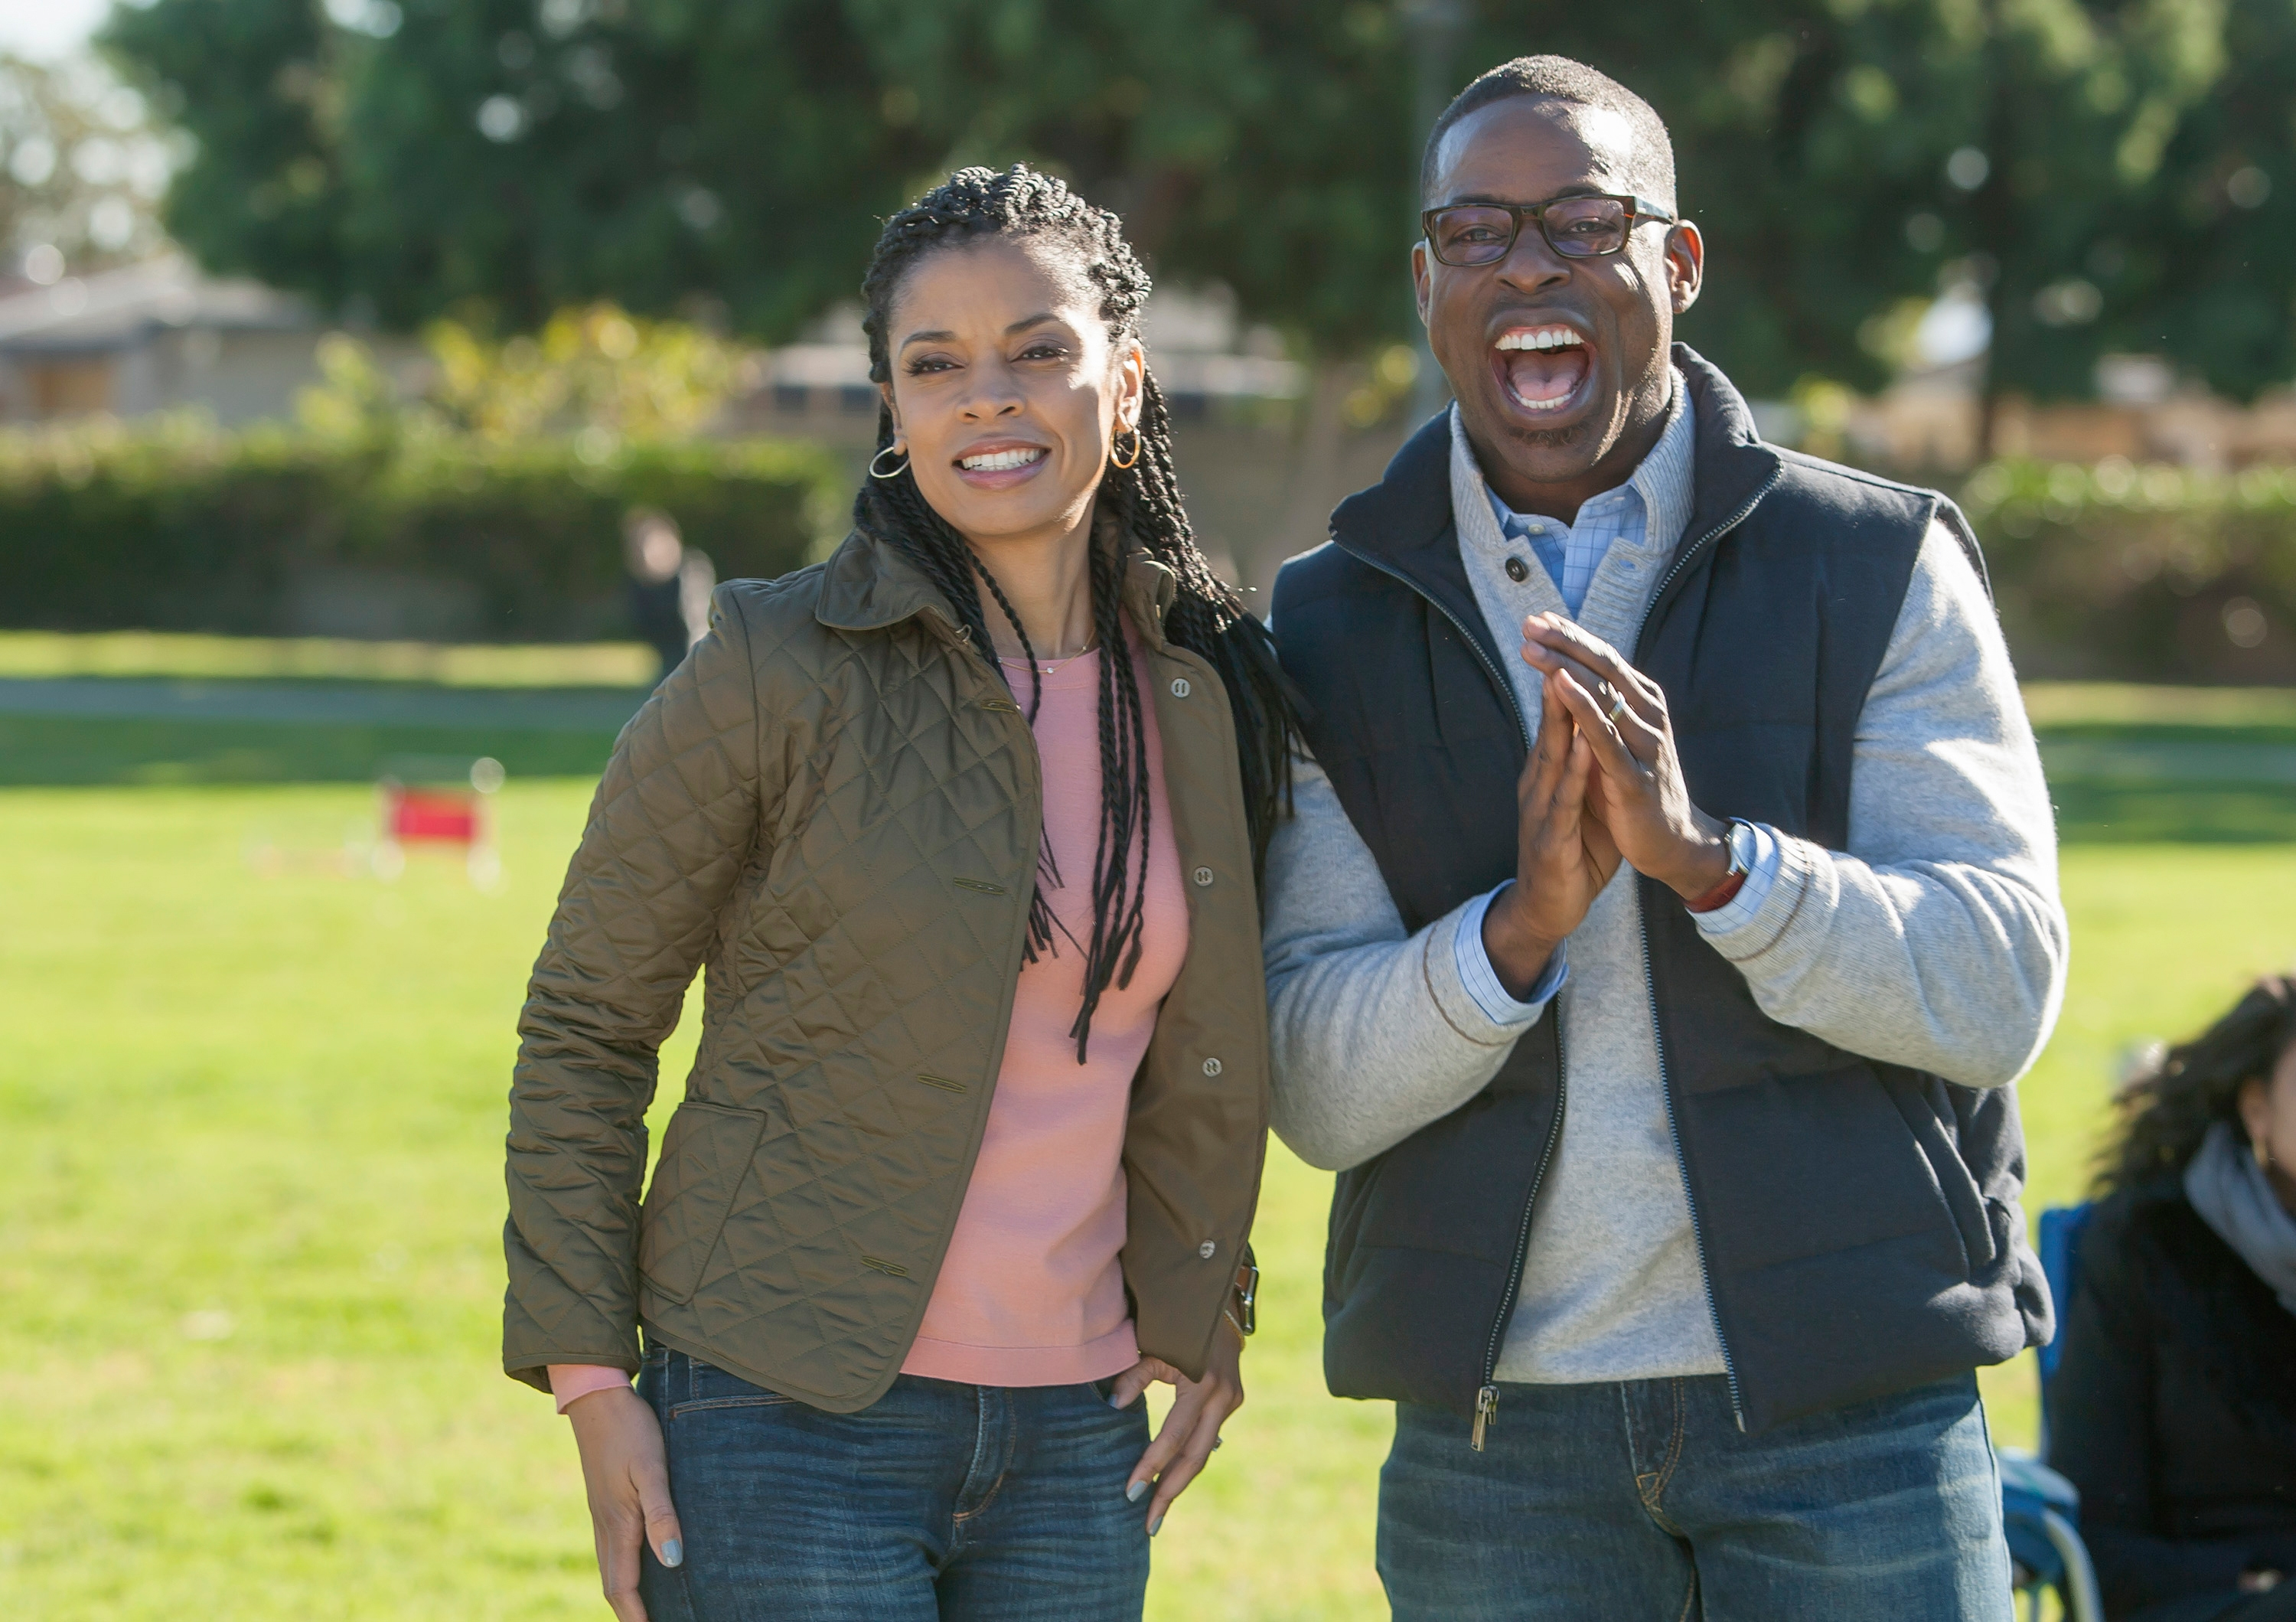 'This is Us' premiering 9 p.m. Tuesday on NBC.  ≈≈≈½ out of 4 stars